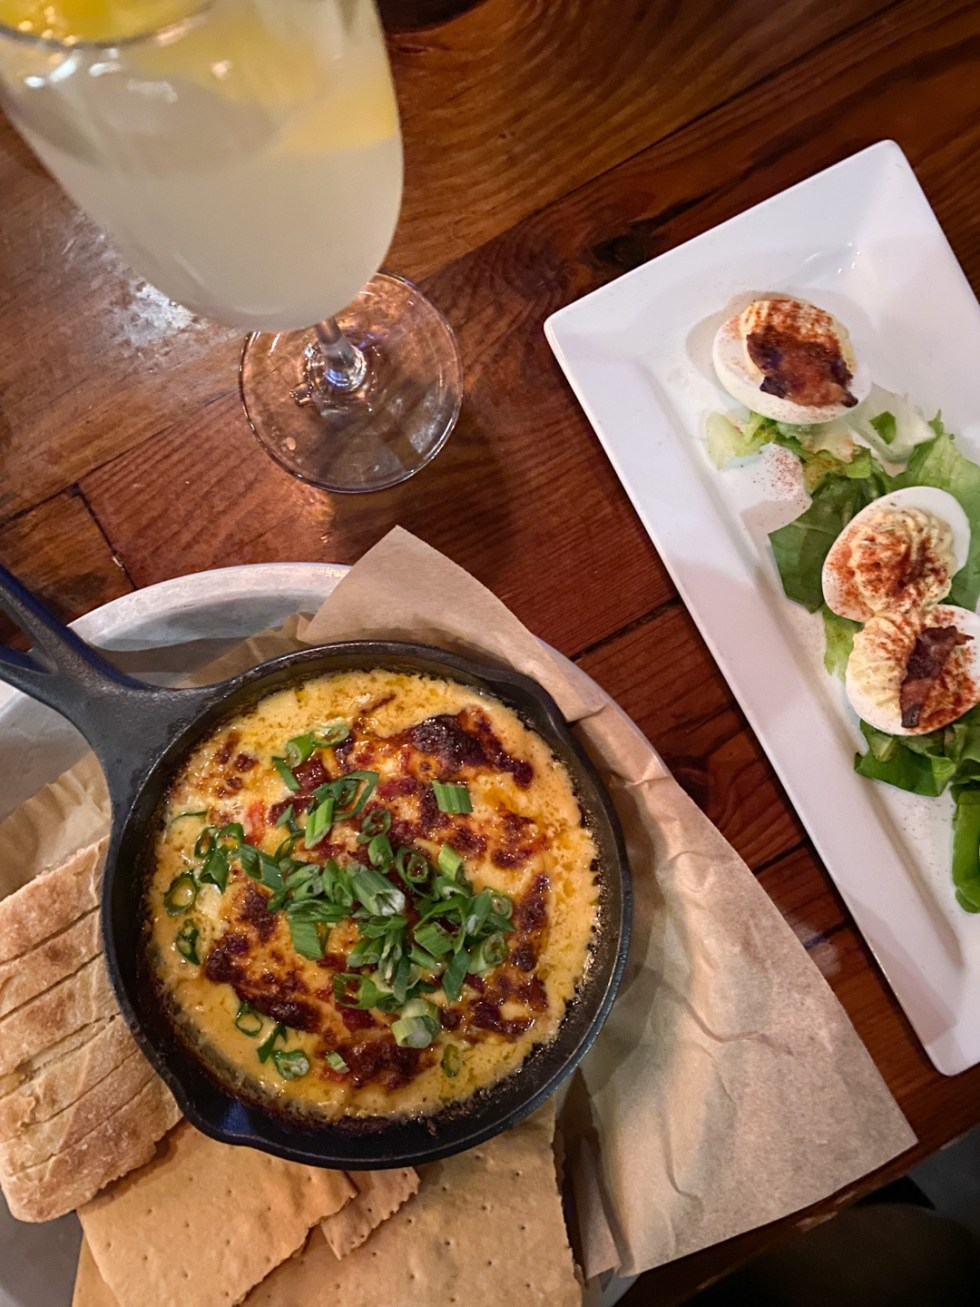 Things to do in Greenville NC by popular NC blog, I'm Fixin' To: image of food at Dickinson Avenue Public House.